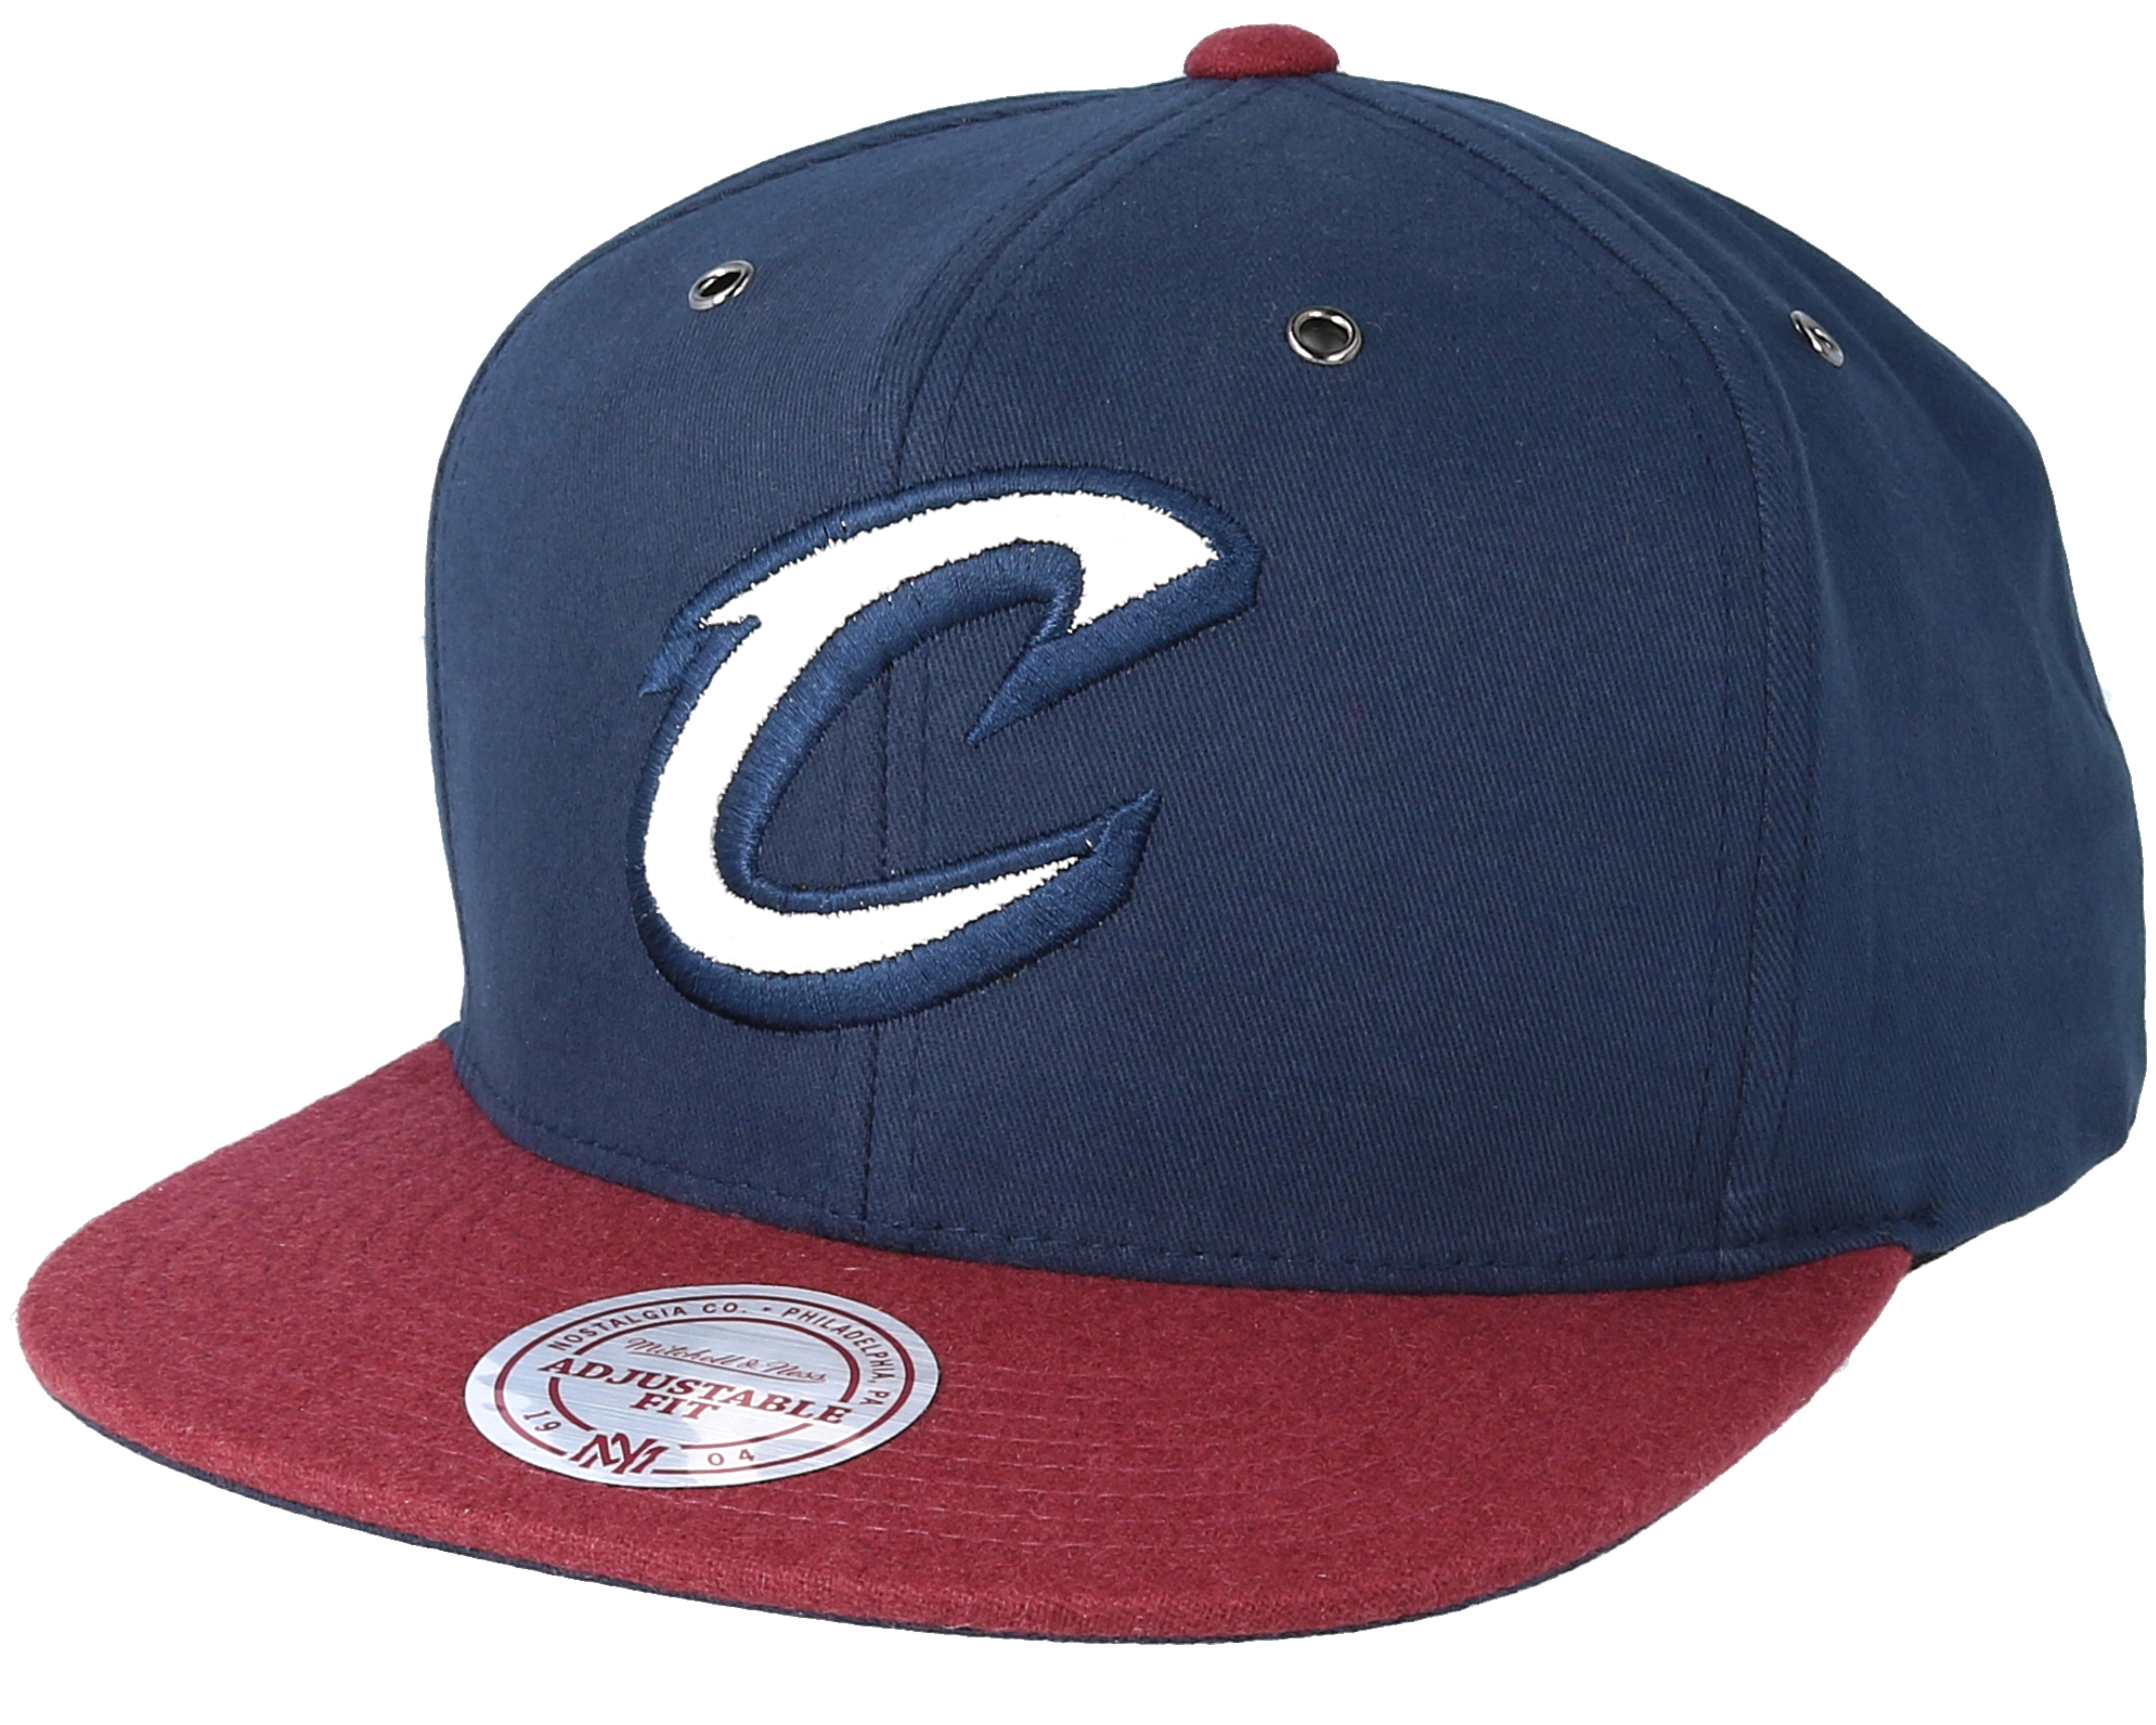 49803dfcce7 Cleveland Cavaliers Terrain Navy Snapback - Mitchell   Ness caps ...